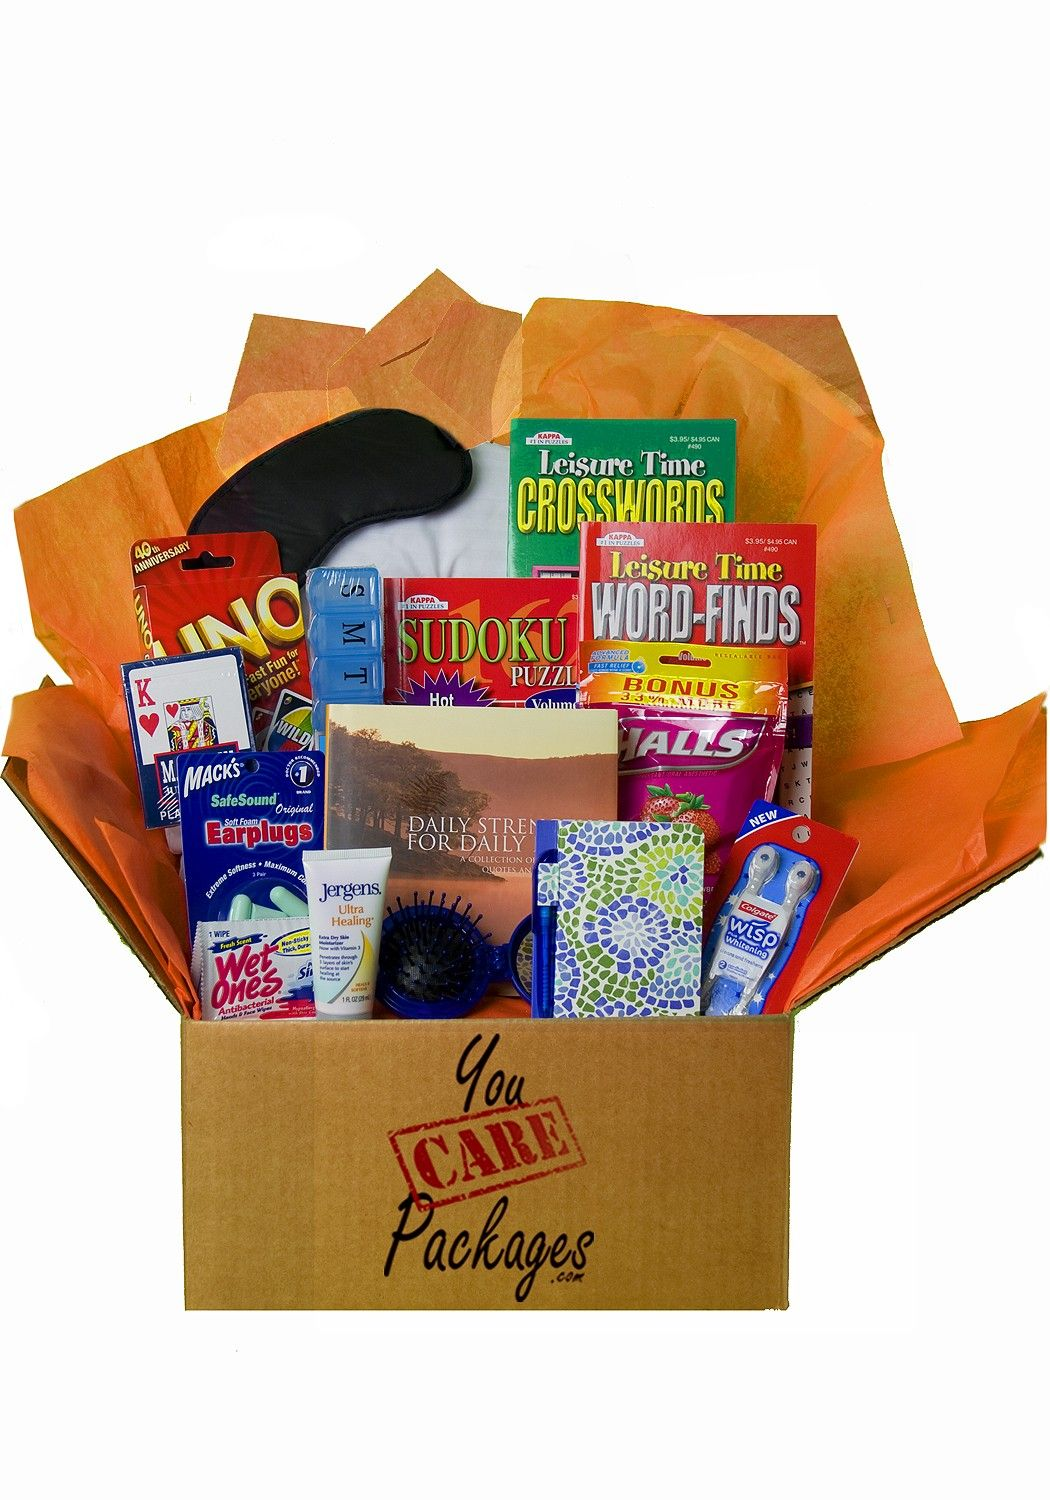 get well hospital care package - you care packages | gift ideas